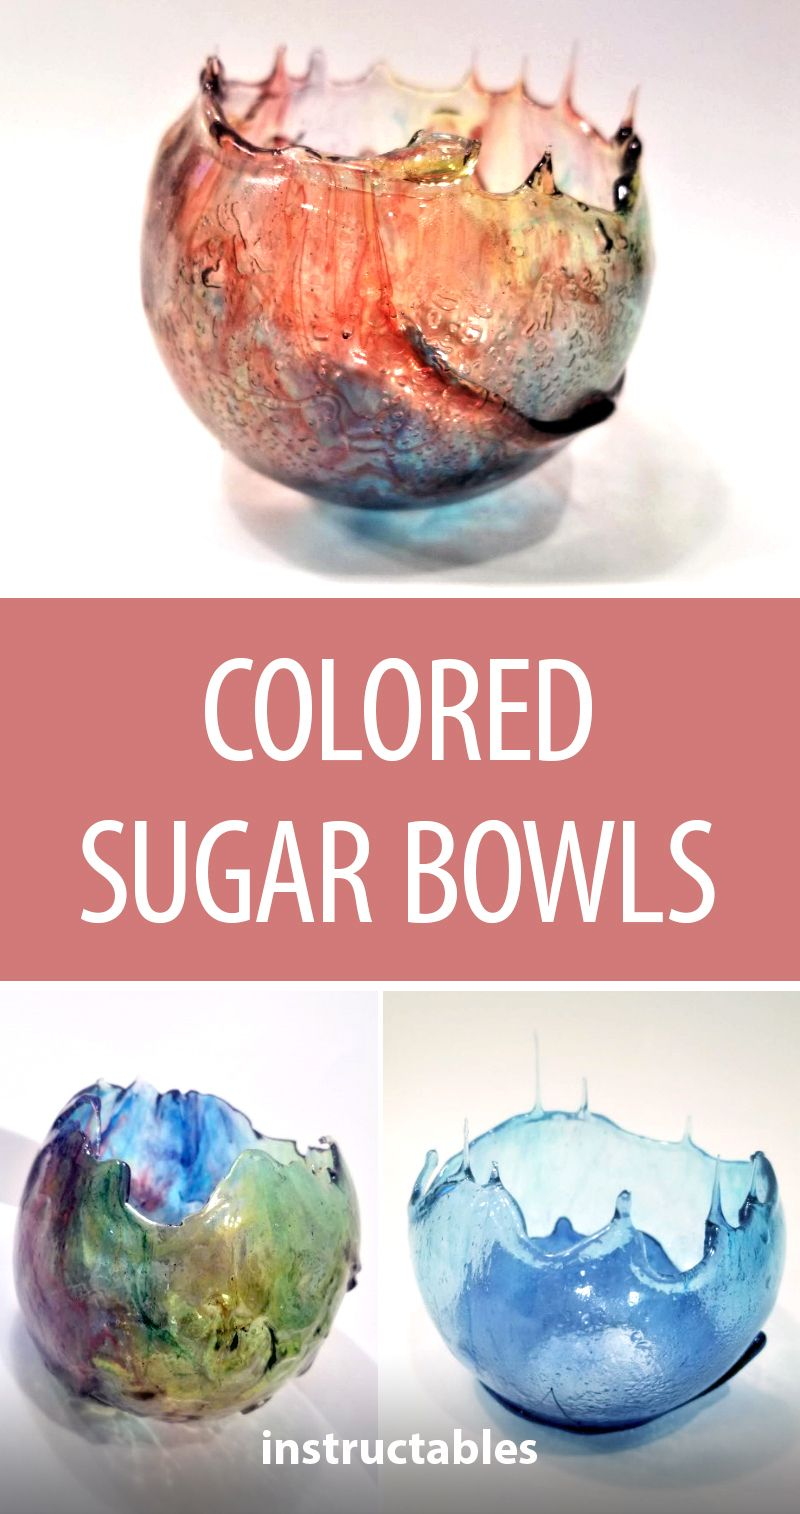 Colored Sugar Bowls is part of Chocolate bowls - Colored Sugar Bowls By looking at something that looks as amazing as these edible bowls, you might think that they require special tools, lots of practice and expensive materials  But they don't! Using a few household items you probably already have, these rain bowc